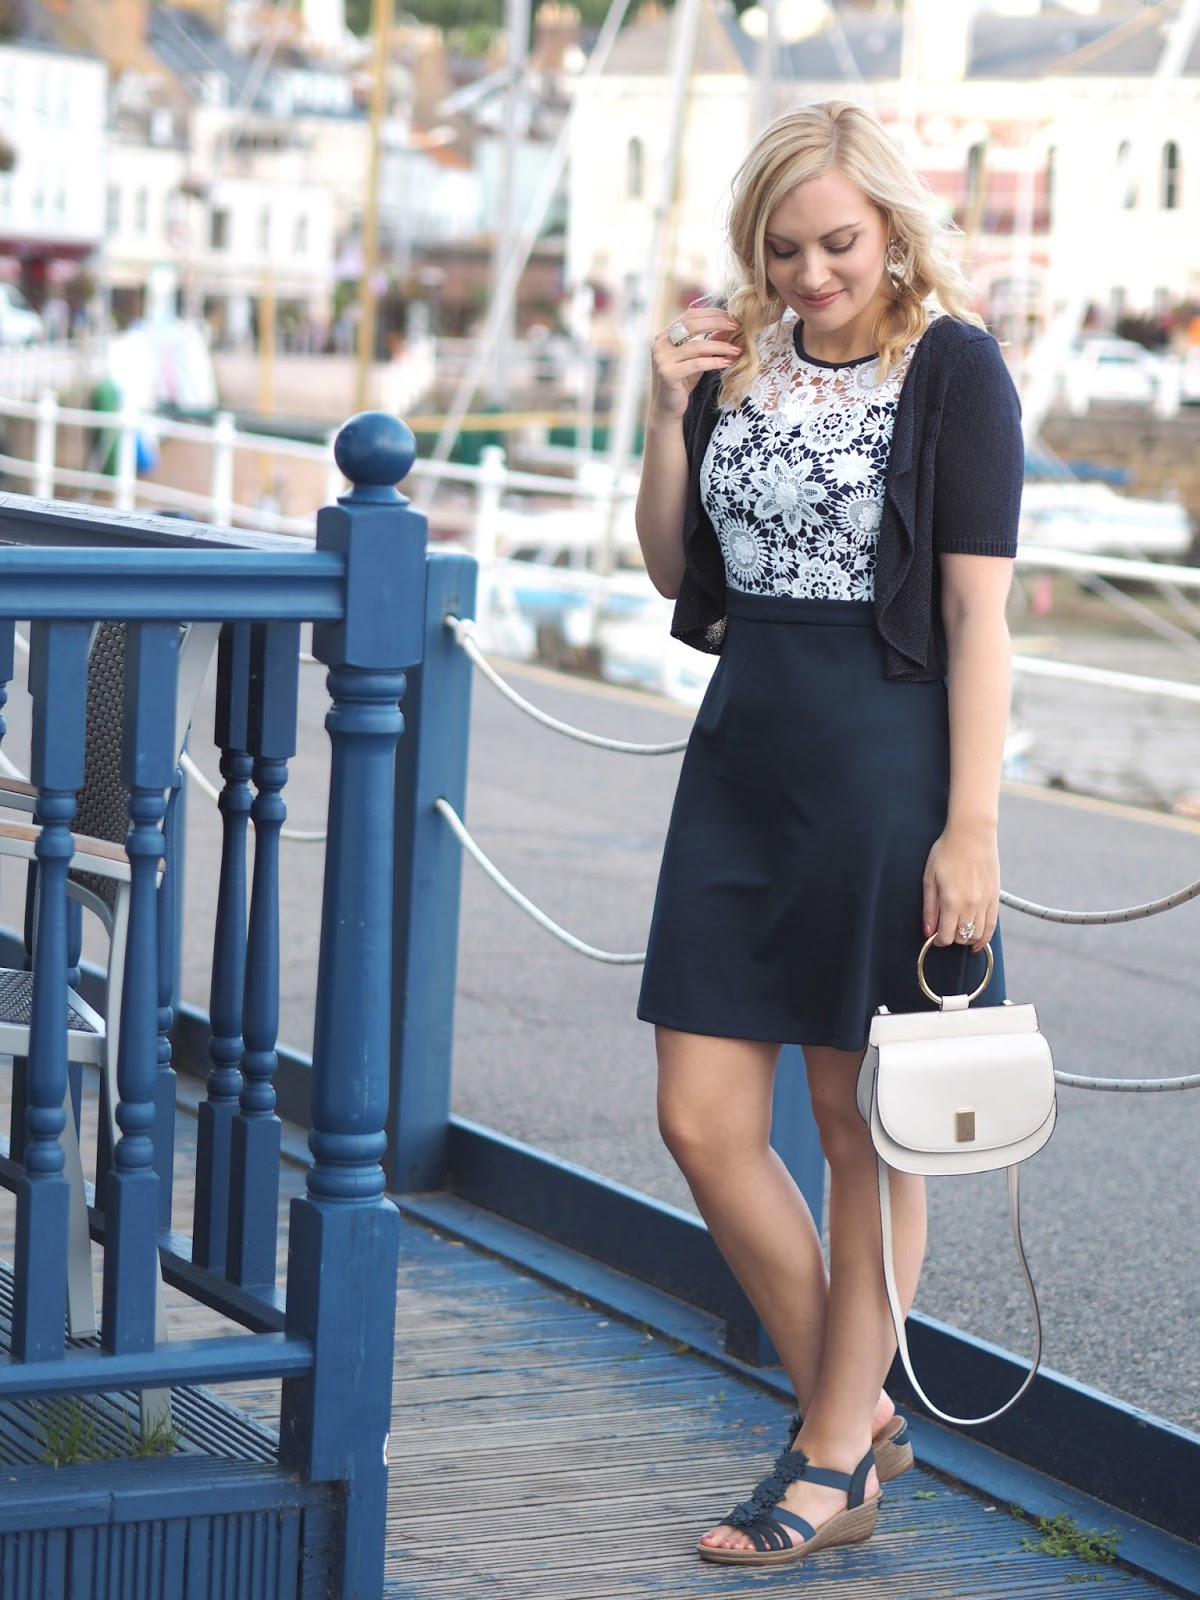 Dressed for Dinner at The Salty Dog, Jersey, Channel Islands, St Aubins Bay, The Salty Dog Restaurant, UK Blogger, Katie Kirk Loves, Fashion Blogger, Fashion Influencer, Style Blogger, Travel Blogger, UK Travel Blogger, Restaurant Review, Food Blogger